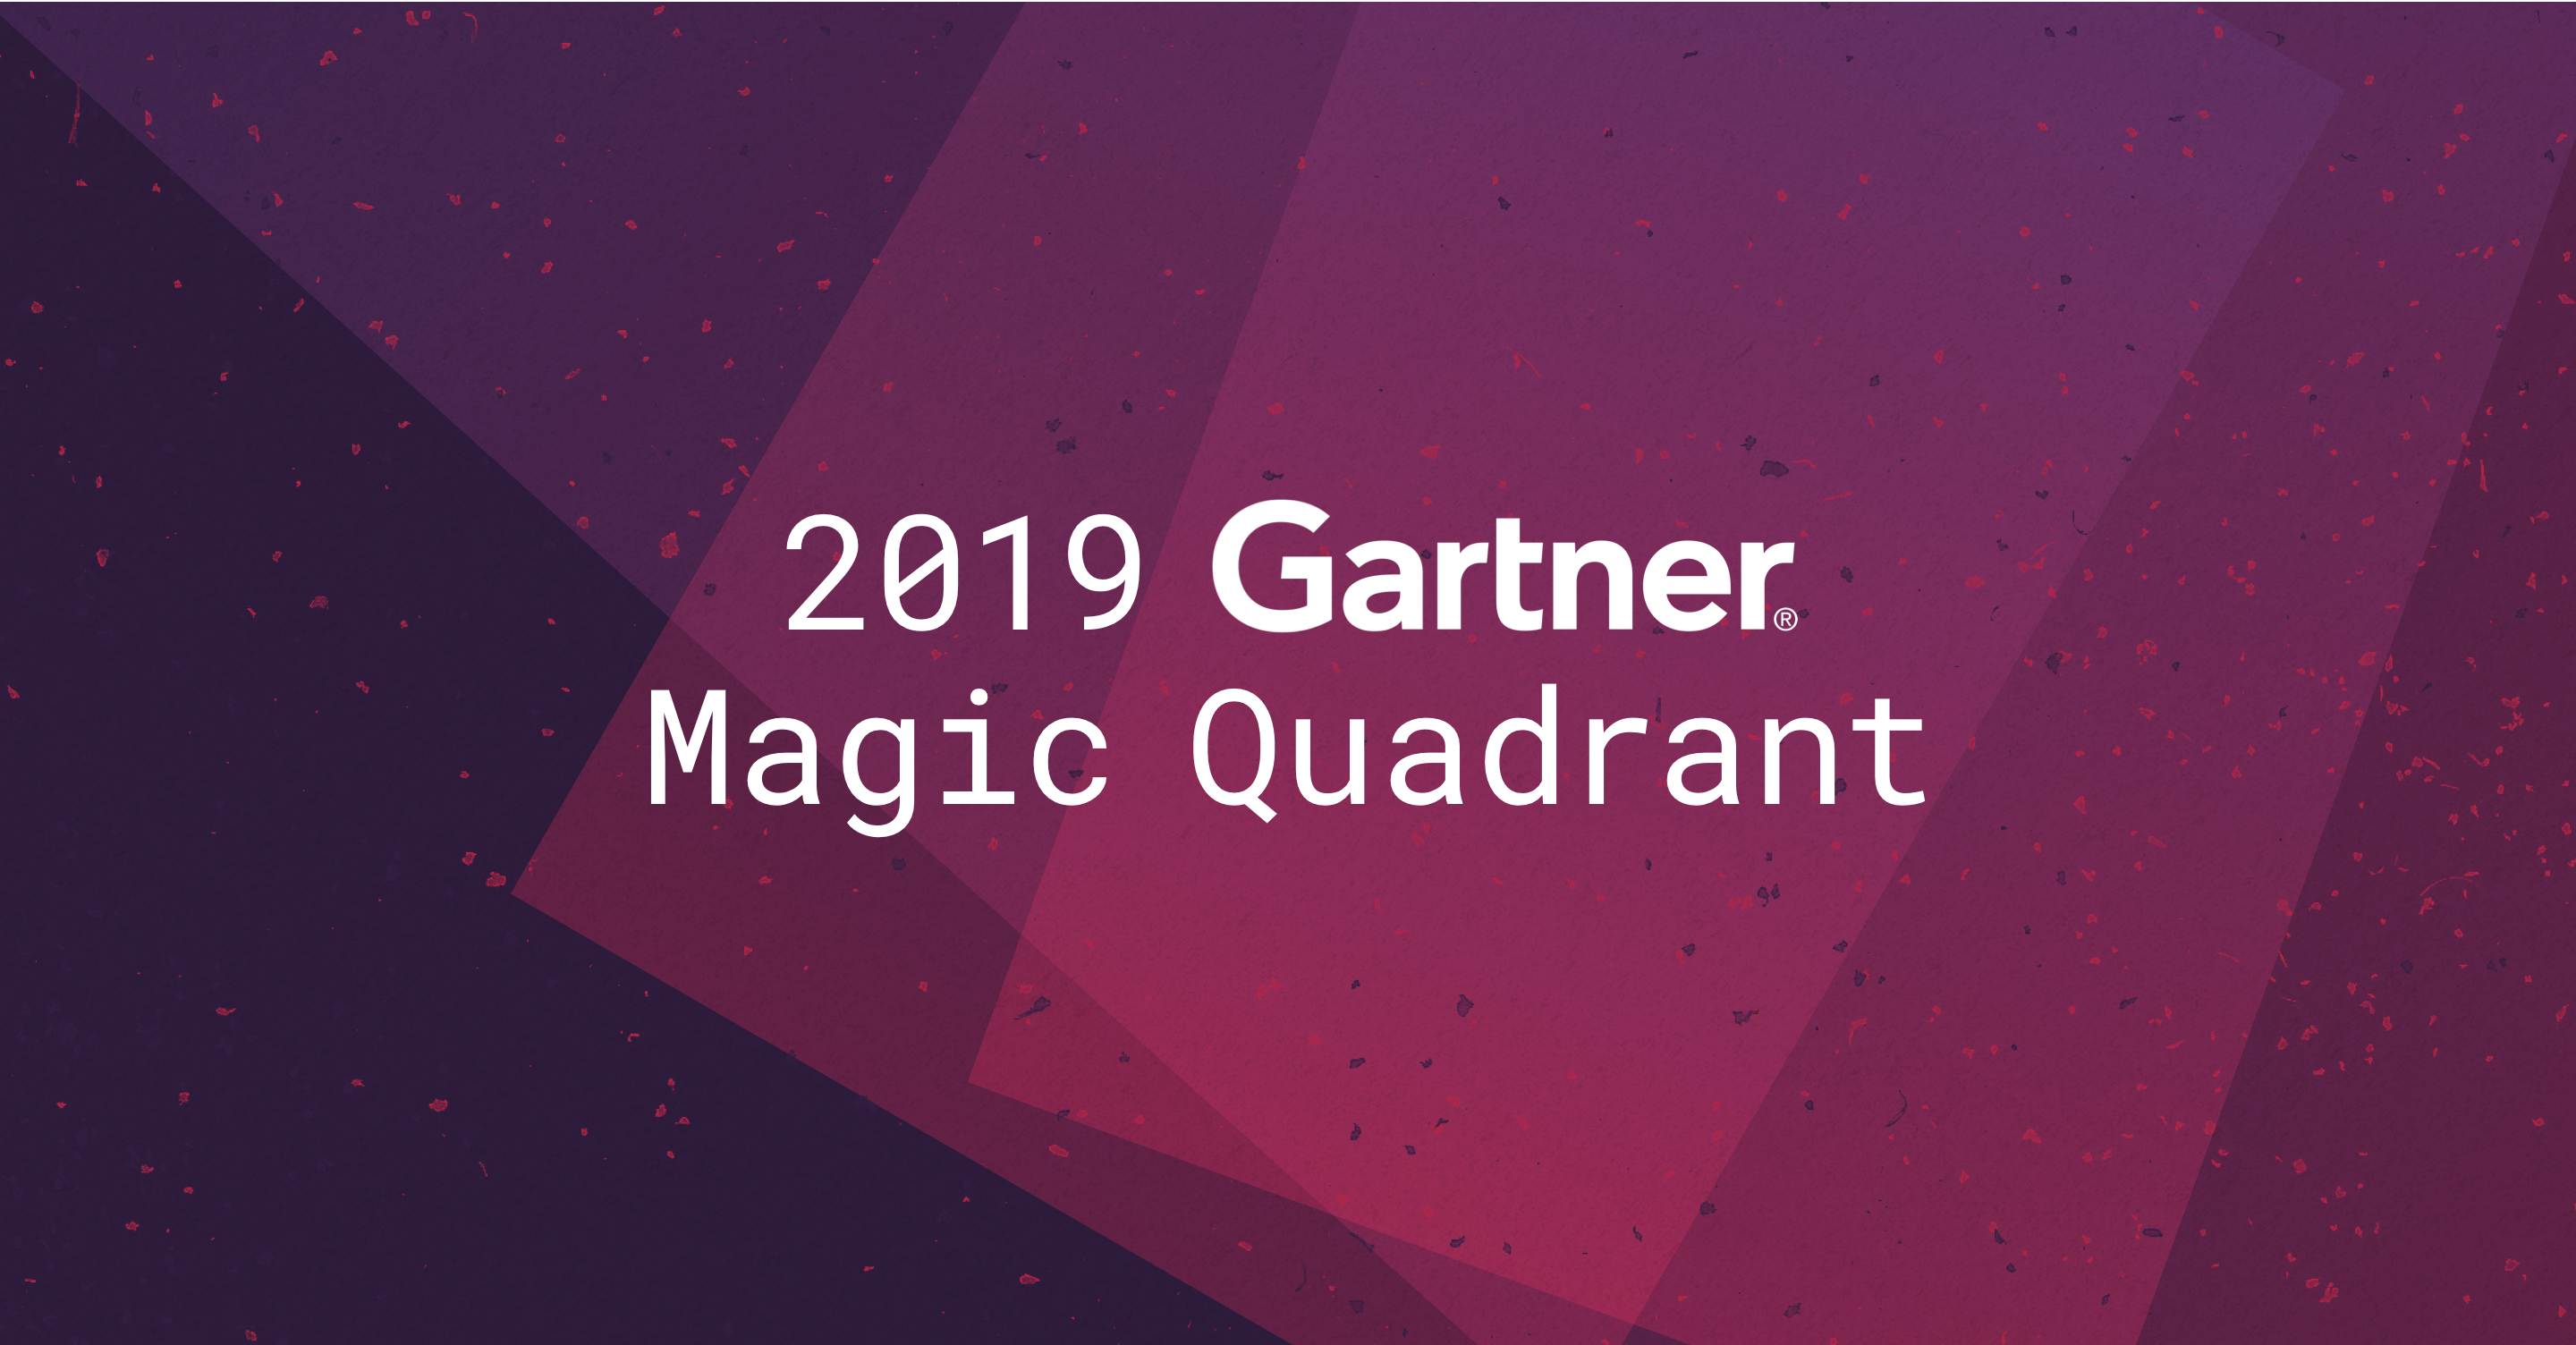 Gartner Works Its Magic—We're on the Quadrant!